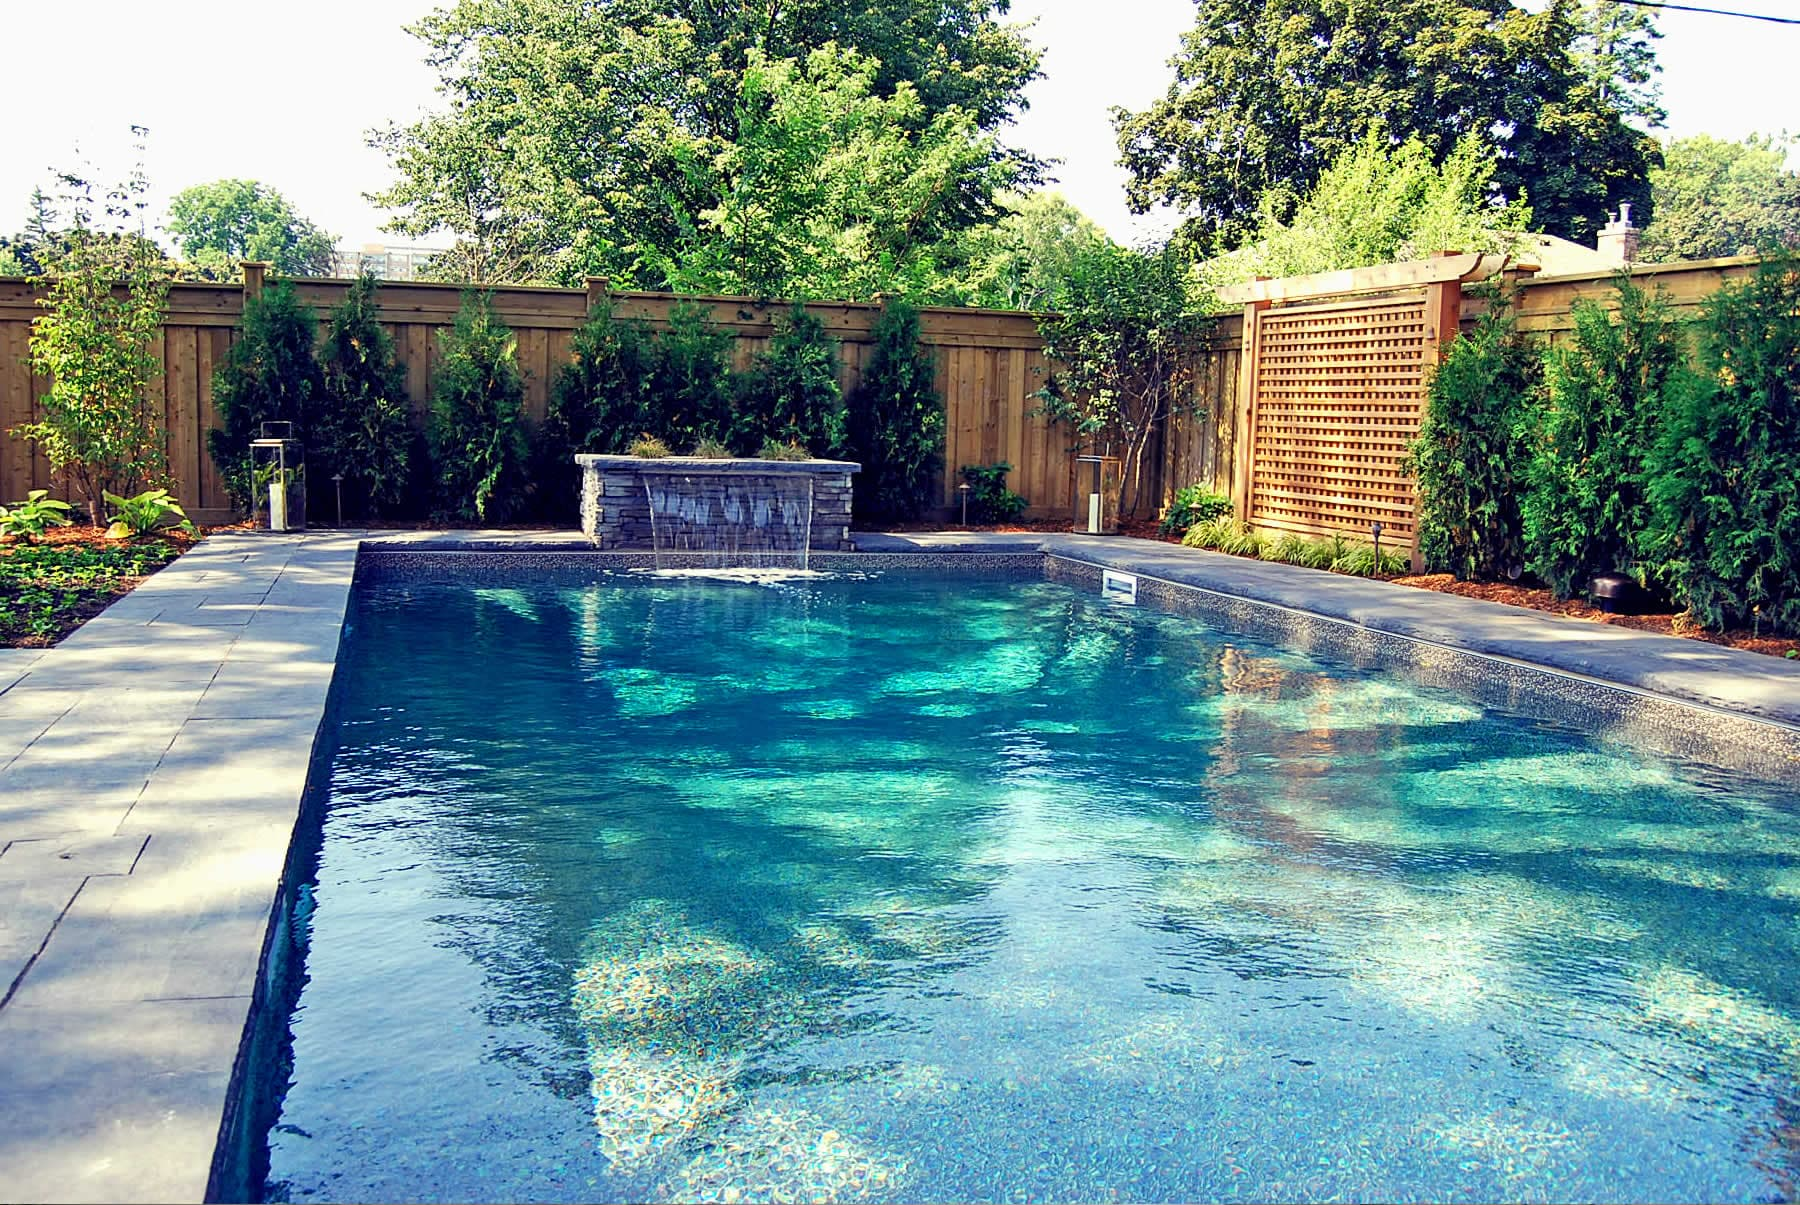 Mississauga landscaping let 39 s landscape together - Swimming pools burlington ontario ...